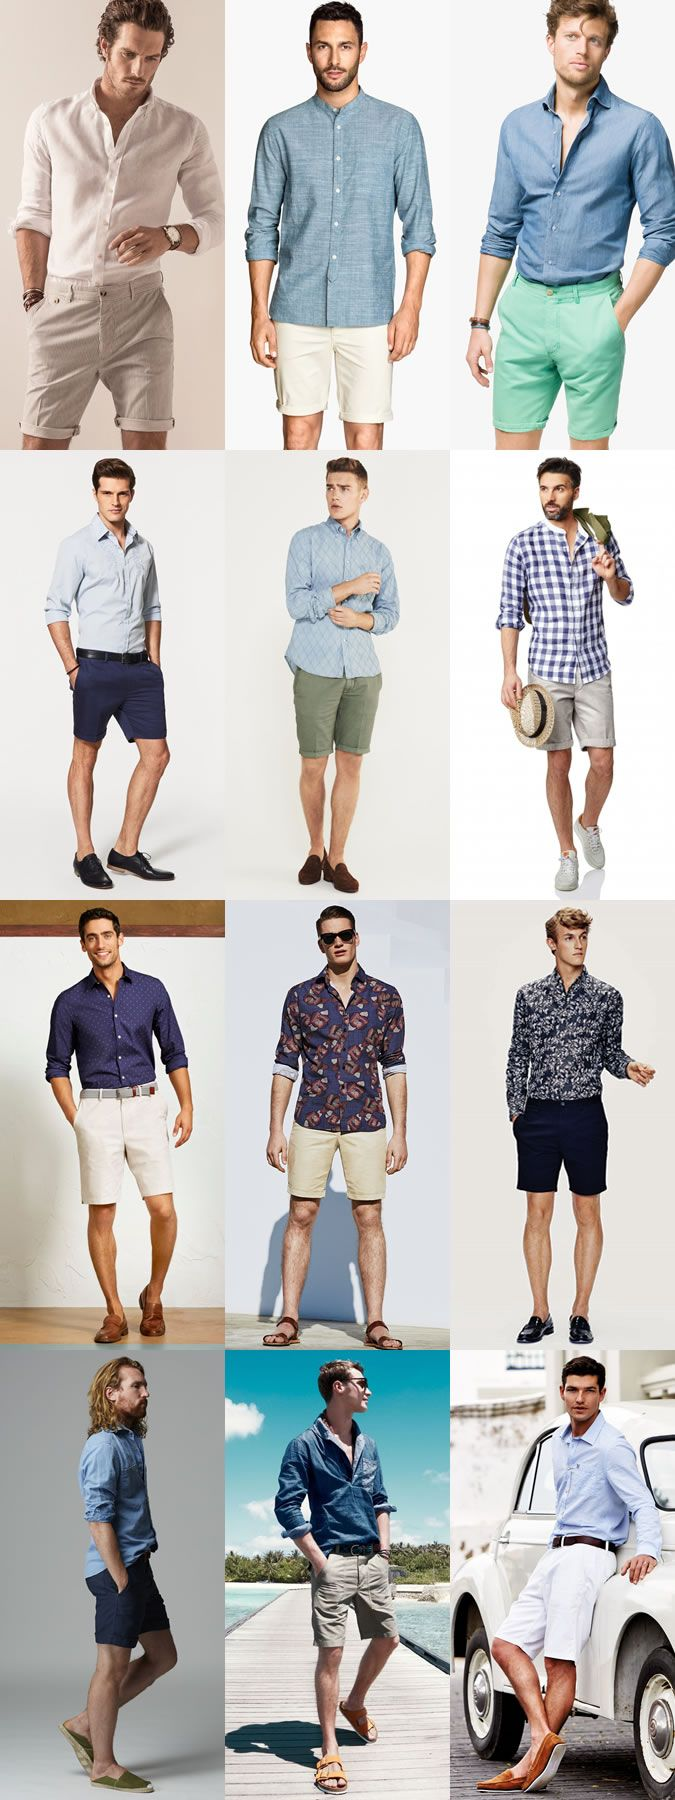 Men's Go-To Smart-Casual Summer Outfit Combinations: Long-Sleeved Shirt And Shor…